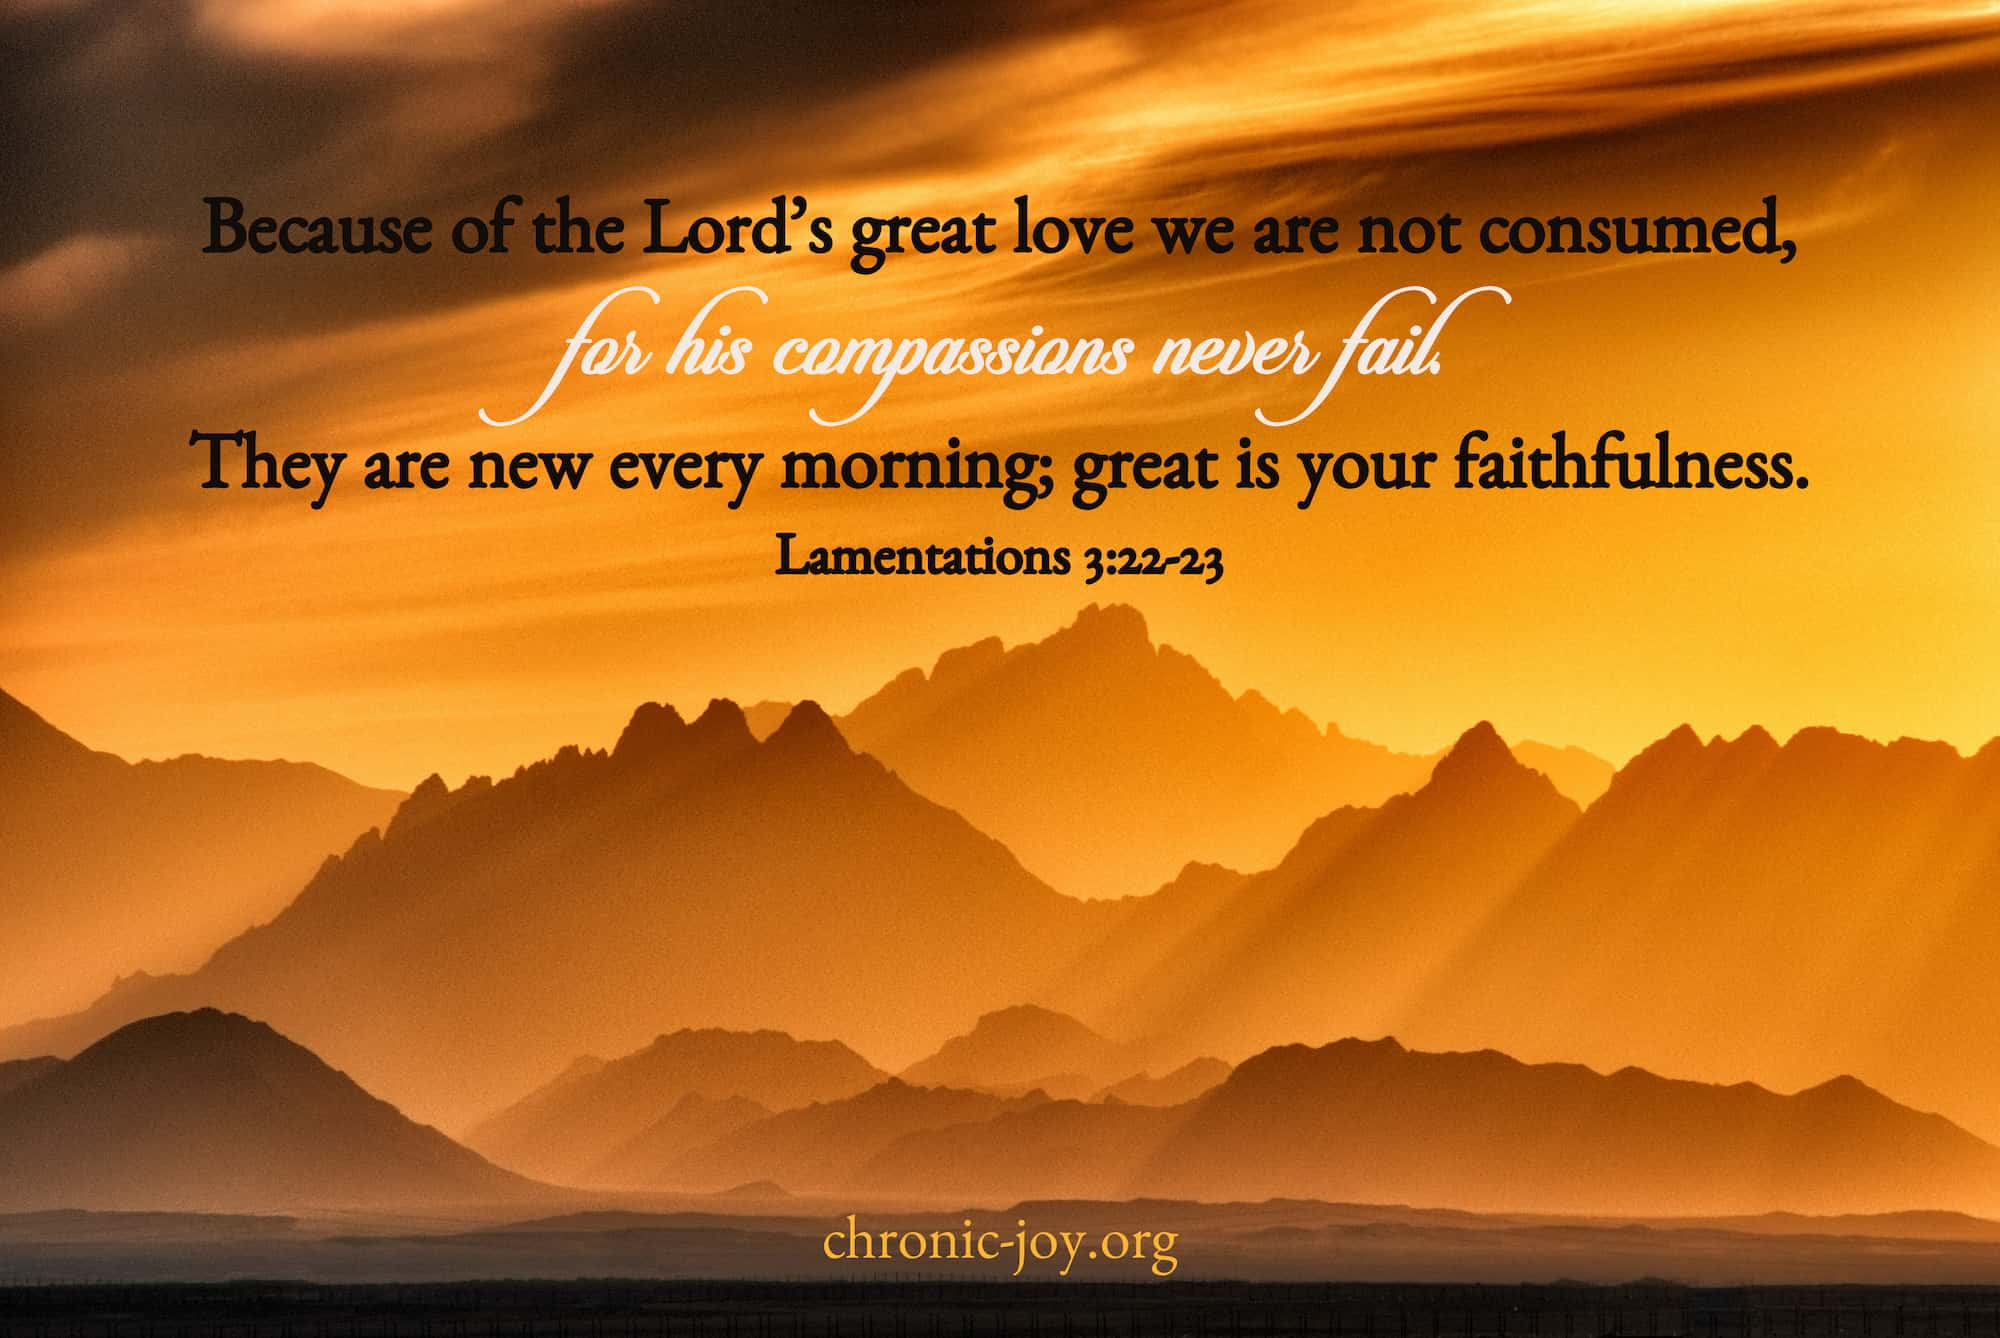 Because of the Lord's great love ... for his compassions never fail.